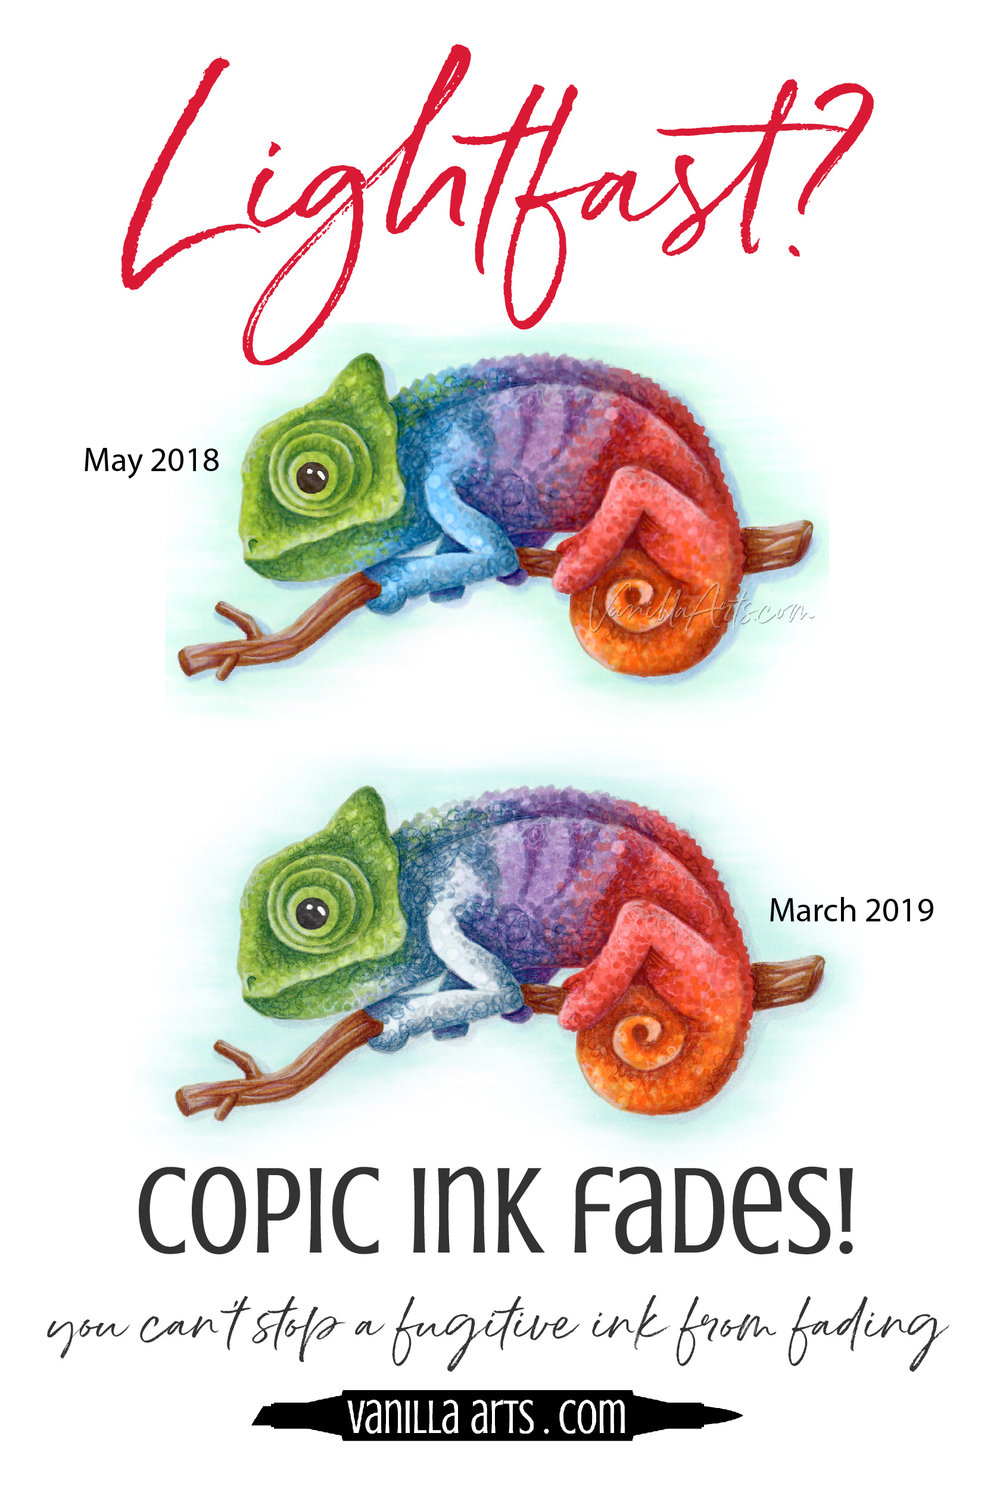 Copic Marker ink is NOT lightfast! Your projects will fade in as little as 6 months. Learn how to preserve your beautiful coloring projects.   VanillaArts.com   #copic #adultcoloring #howtocolor